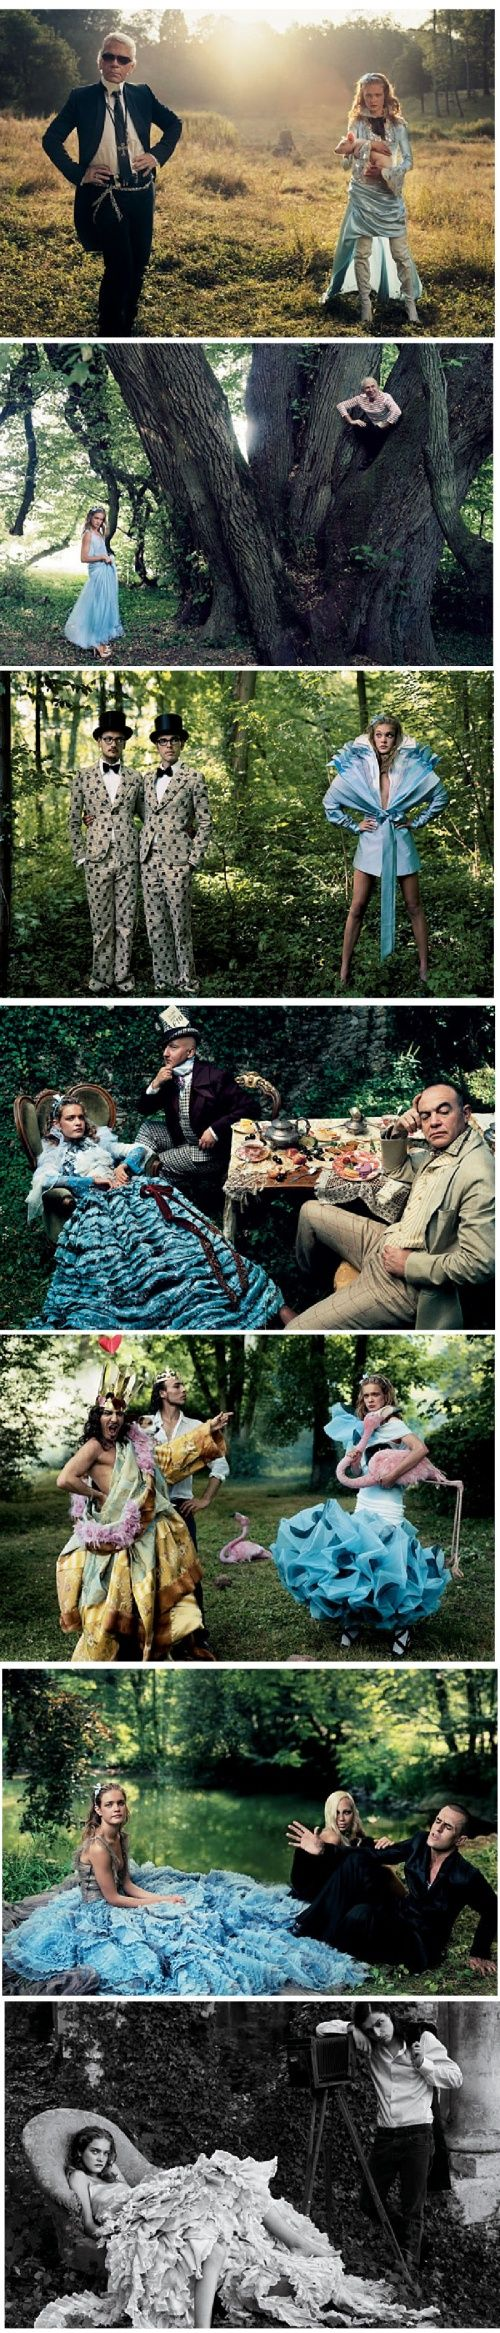 INSPIRATION FOR THE WONDERLAND COLLECTION  Photography legend, Annie Leibovitz did a 'Alice in Wonderland' inspired photo shoot for Vogue Magazine featuring fashion icons and their designs …